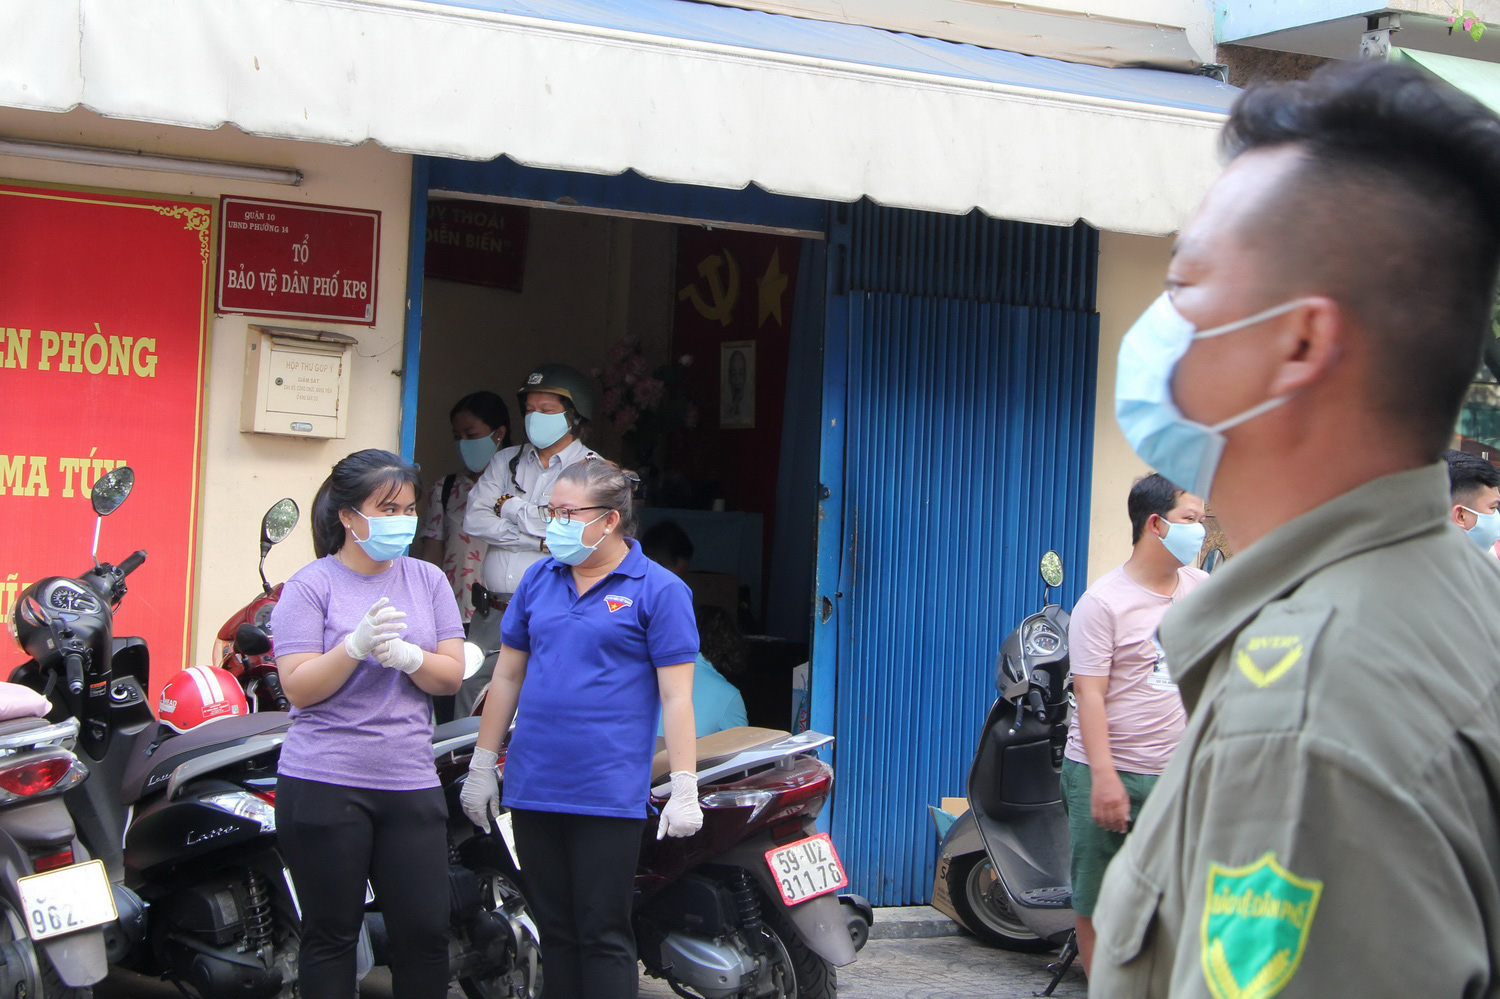 Residents of the apartment building are handed free face masks and hand sanitizers. Photo: Ly Nguyen / Tuoi Tre